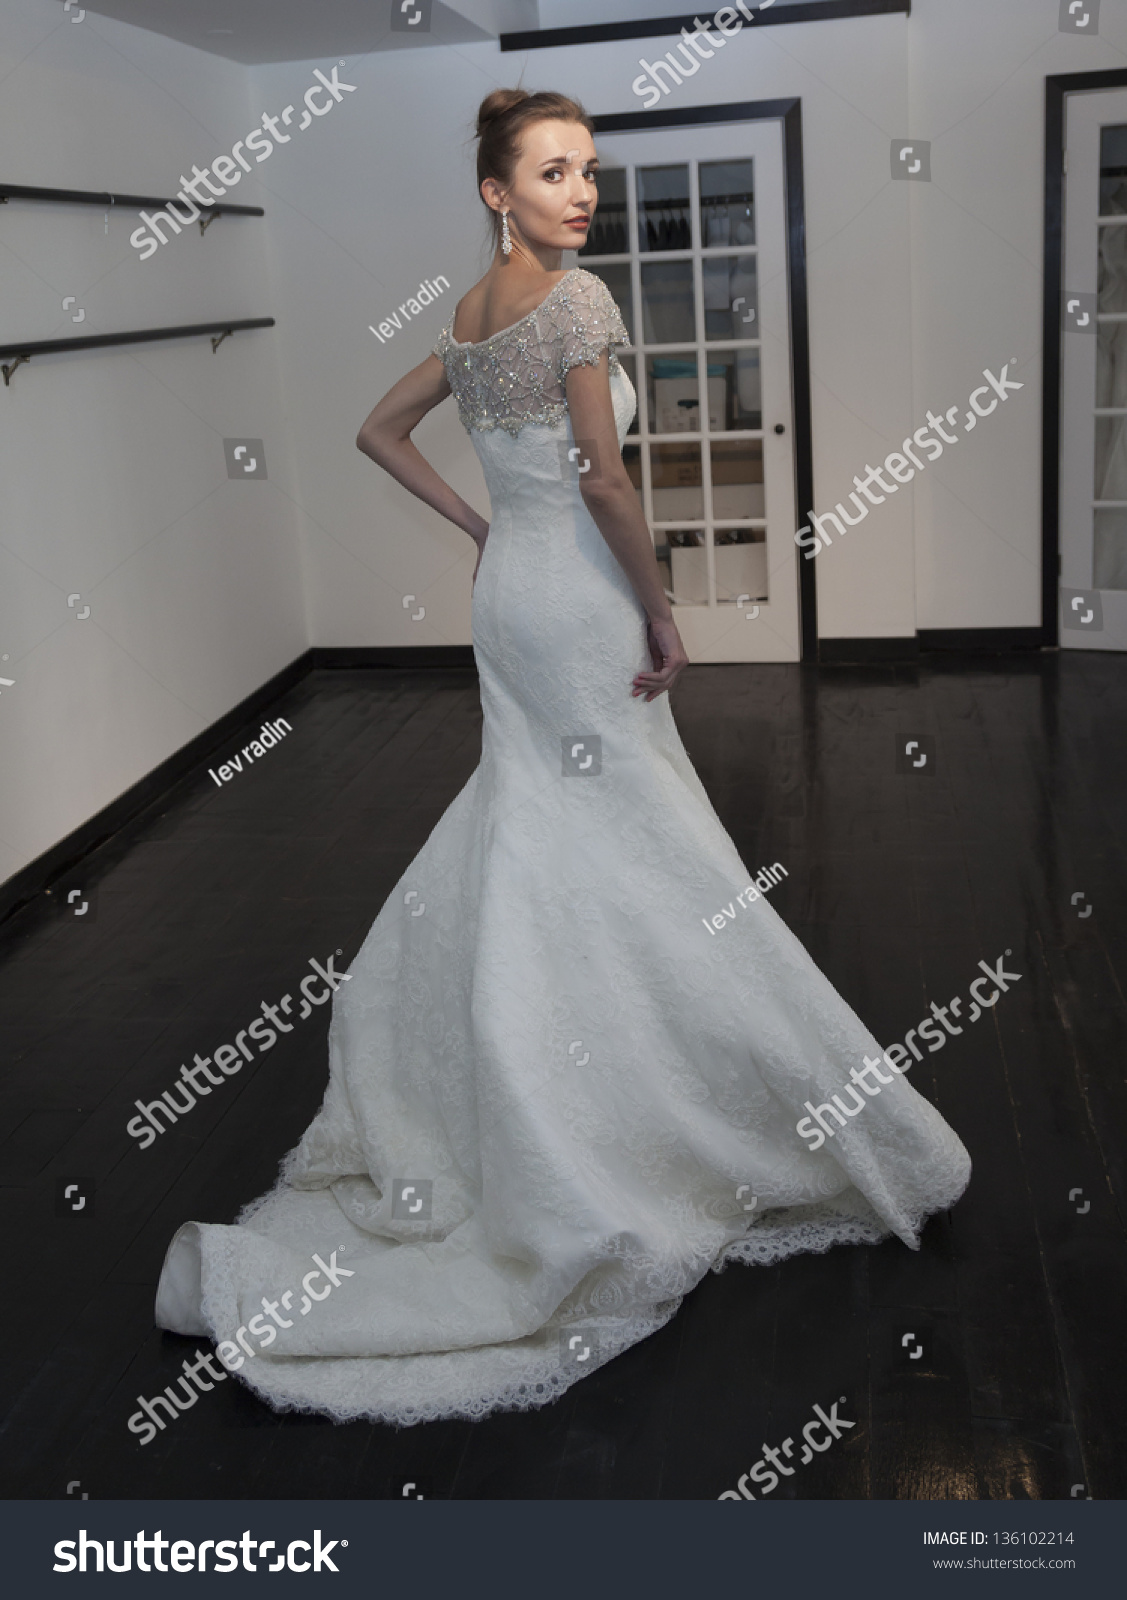 New york april 21 model shows stock photo 136102214 for 37th street salon